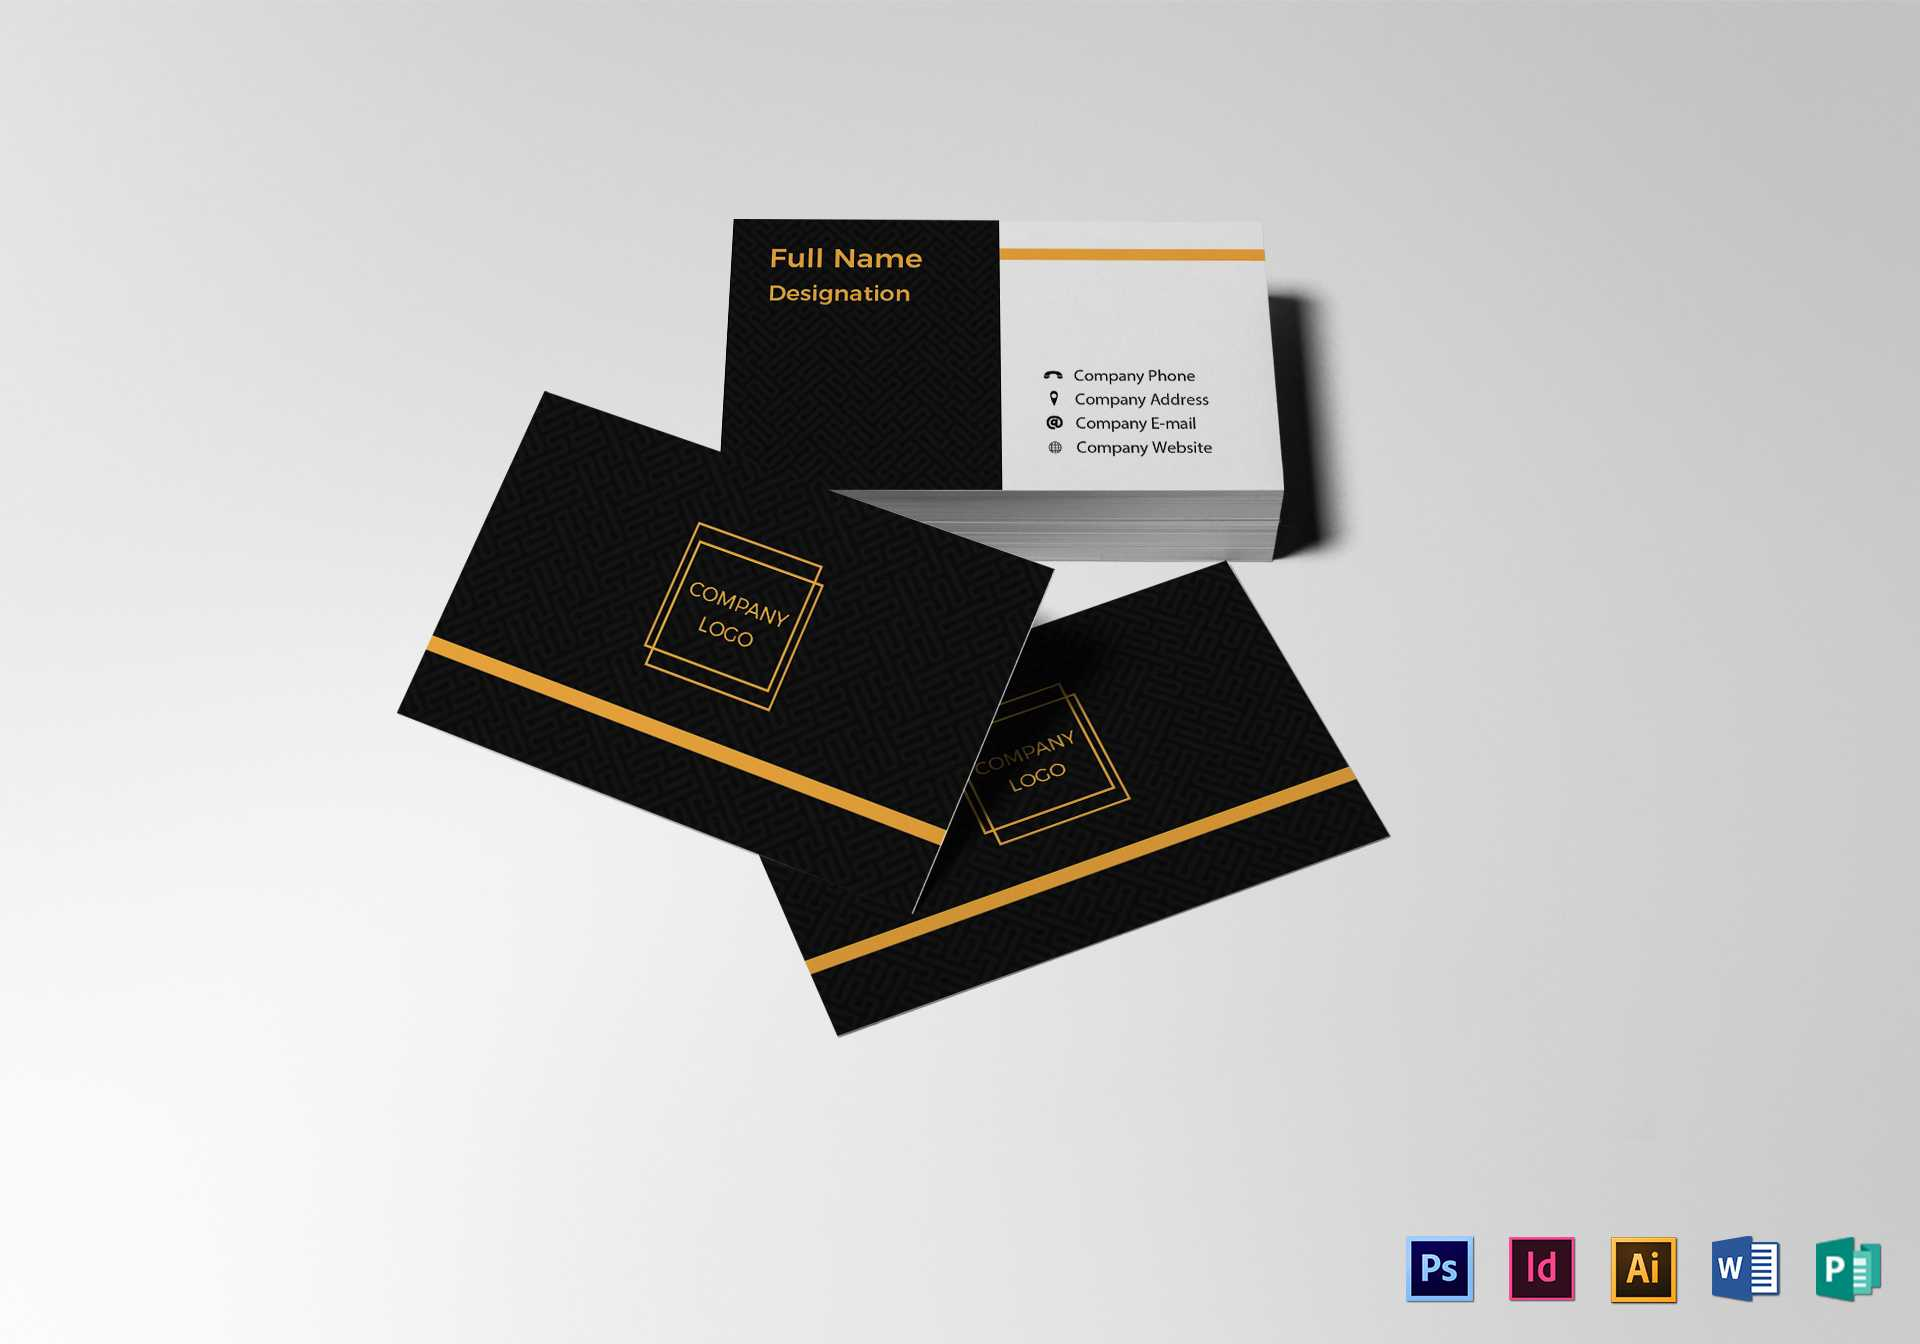 Blank Business Card Template Throughout Blank Business Card Template Photoshop